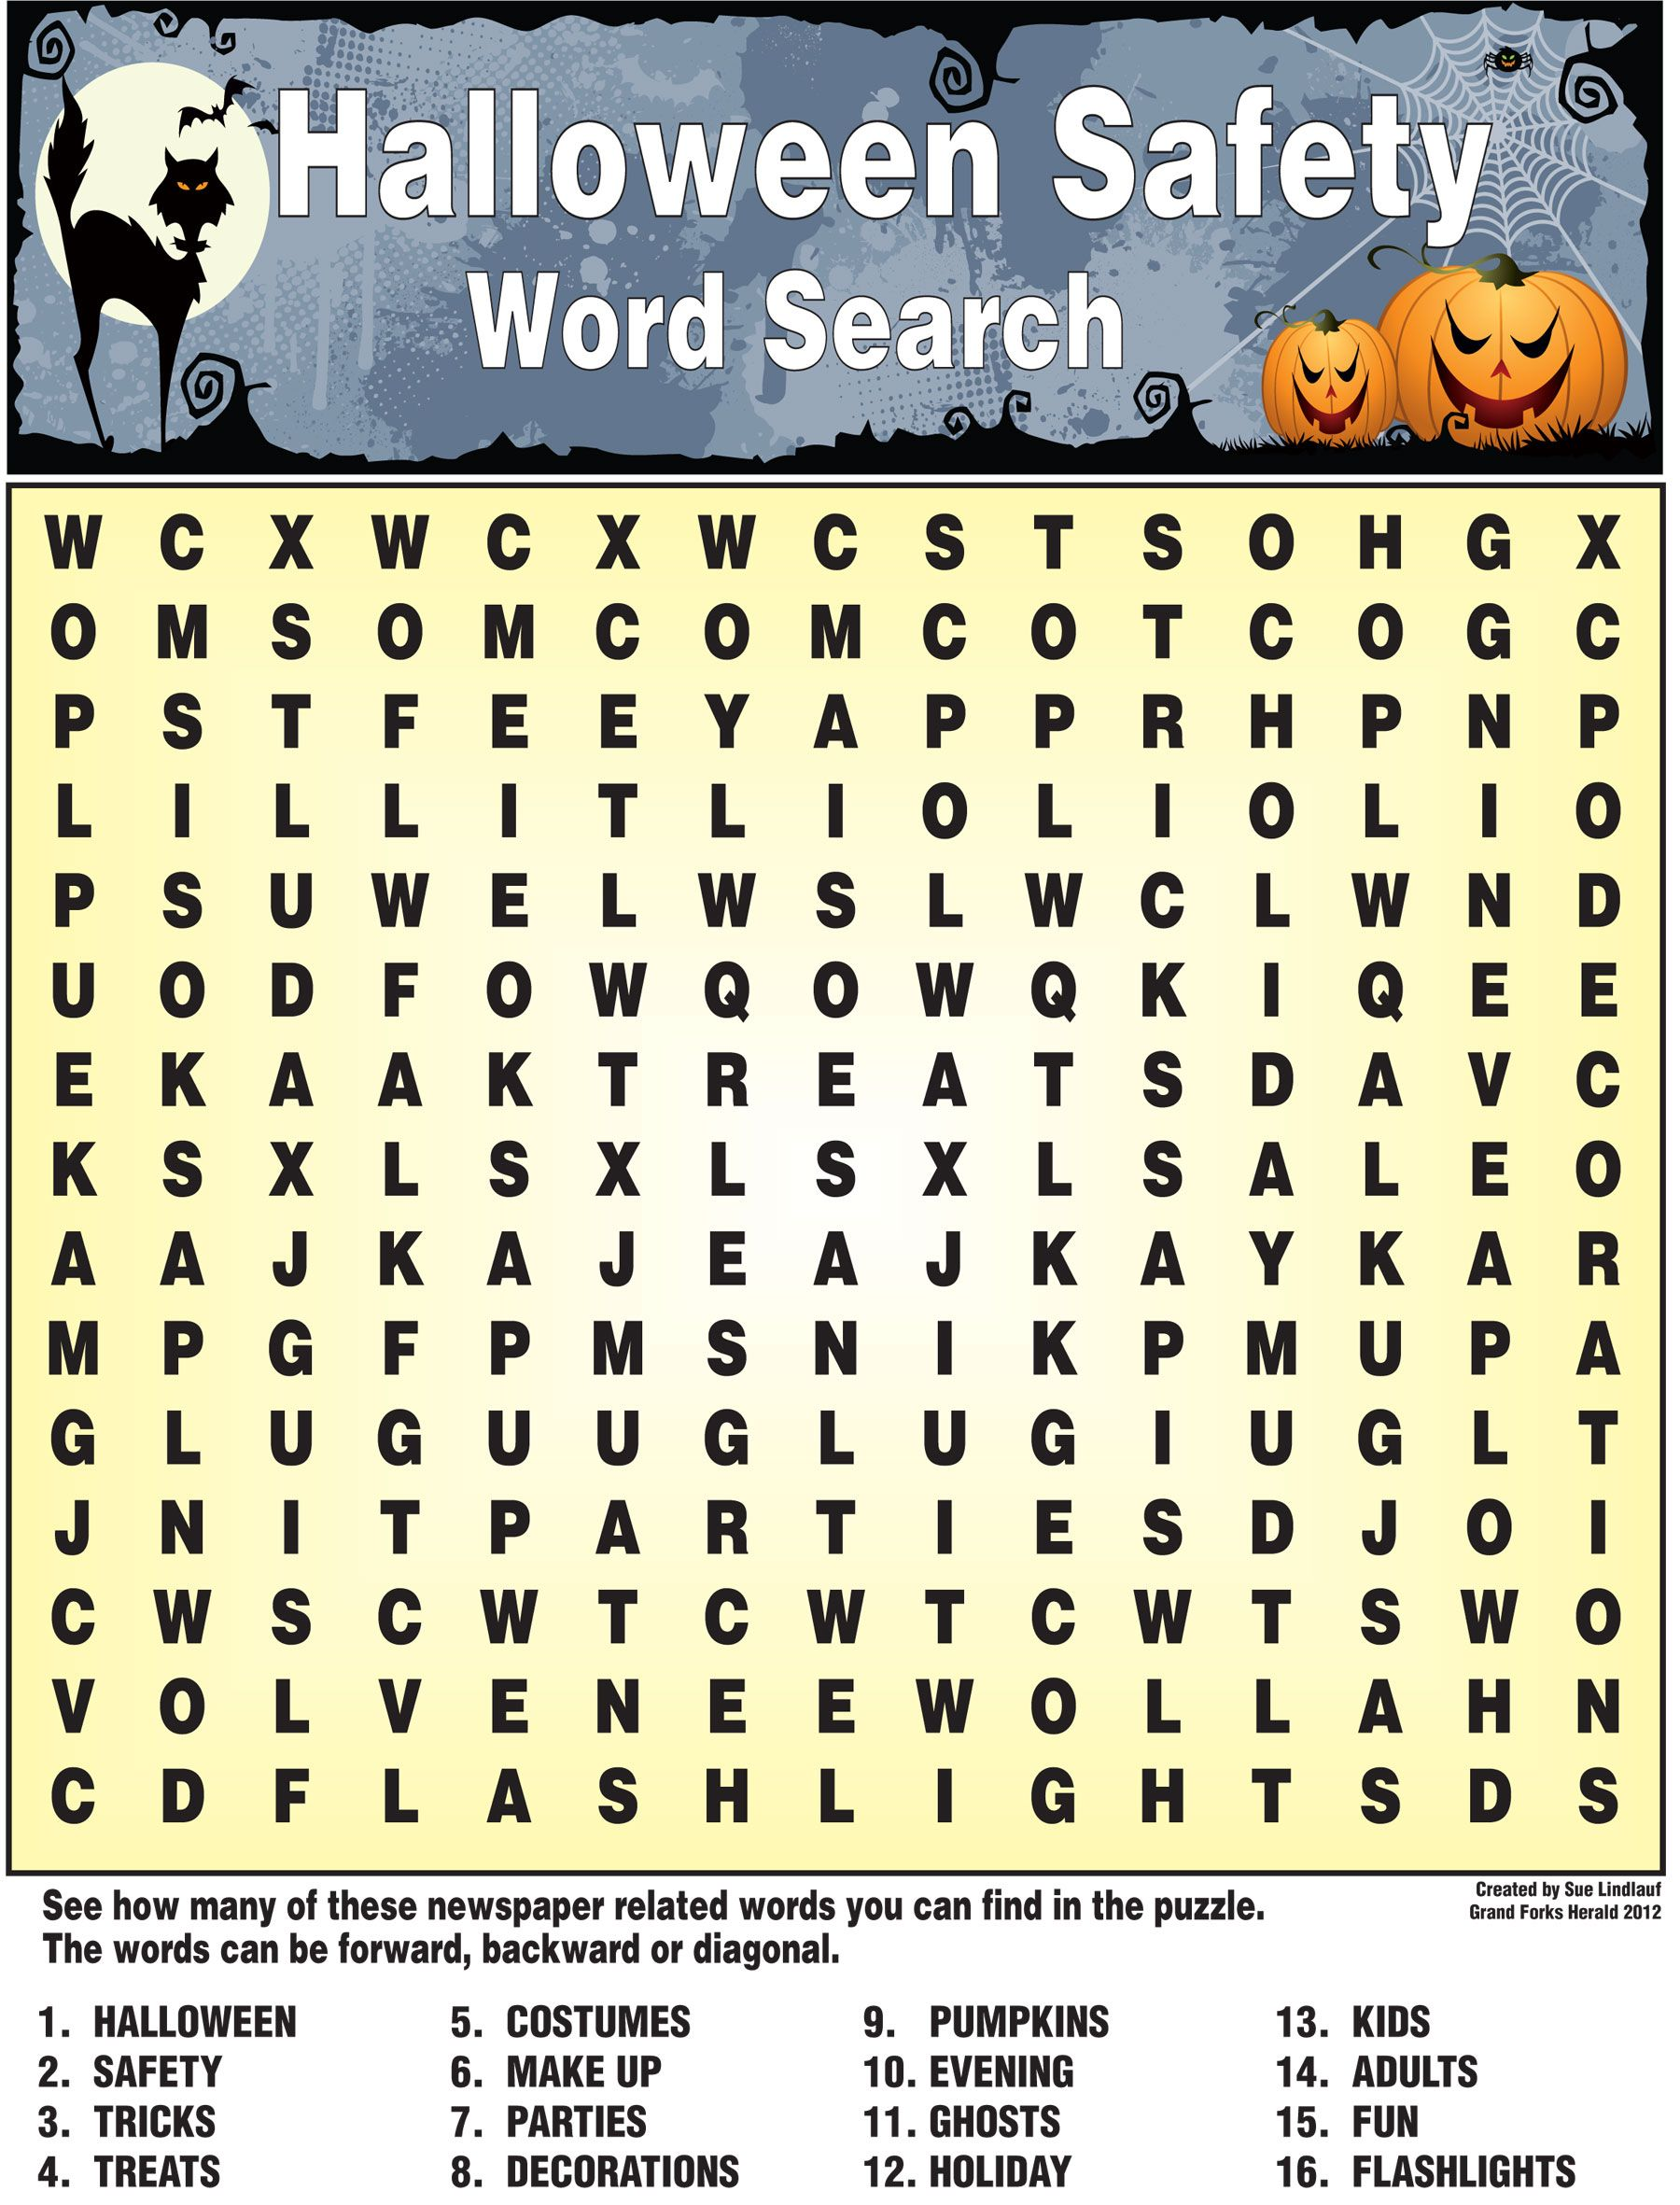 Halloween Safety Word Search